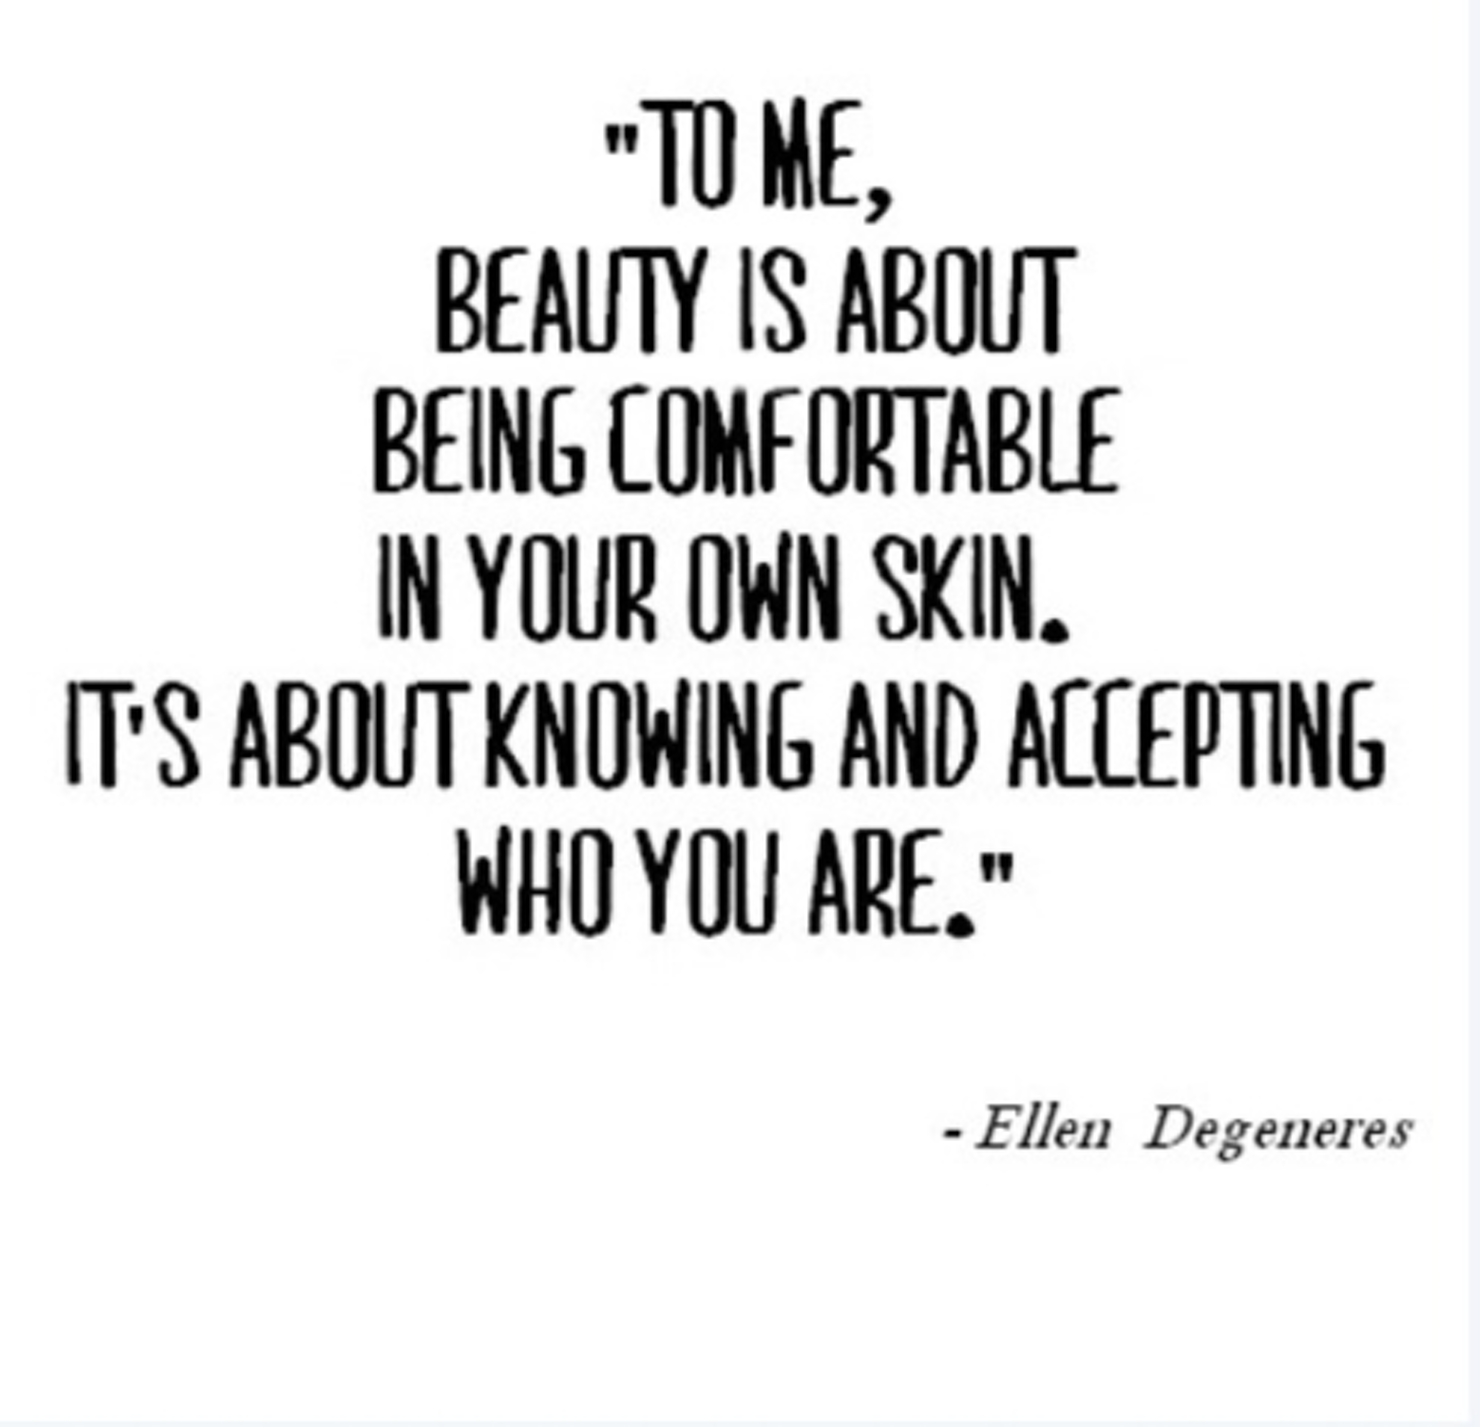 Body Image Quotes Amusing 20 Rad Body Image Quotes To Inspire All The Feels  Pinterest  Body